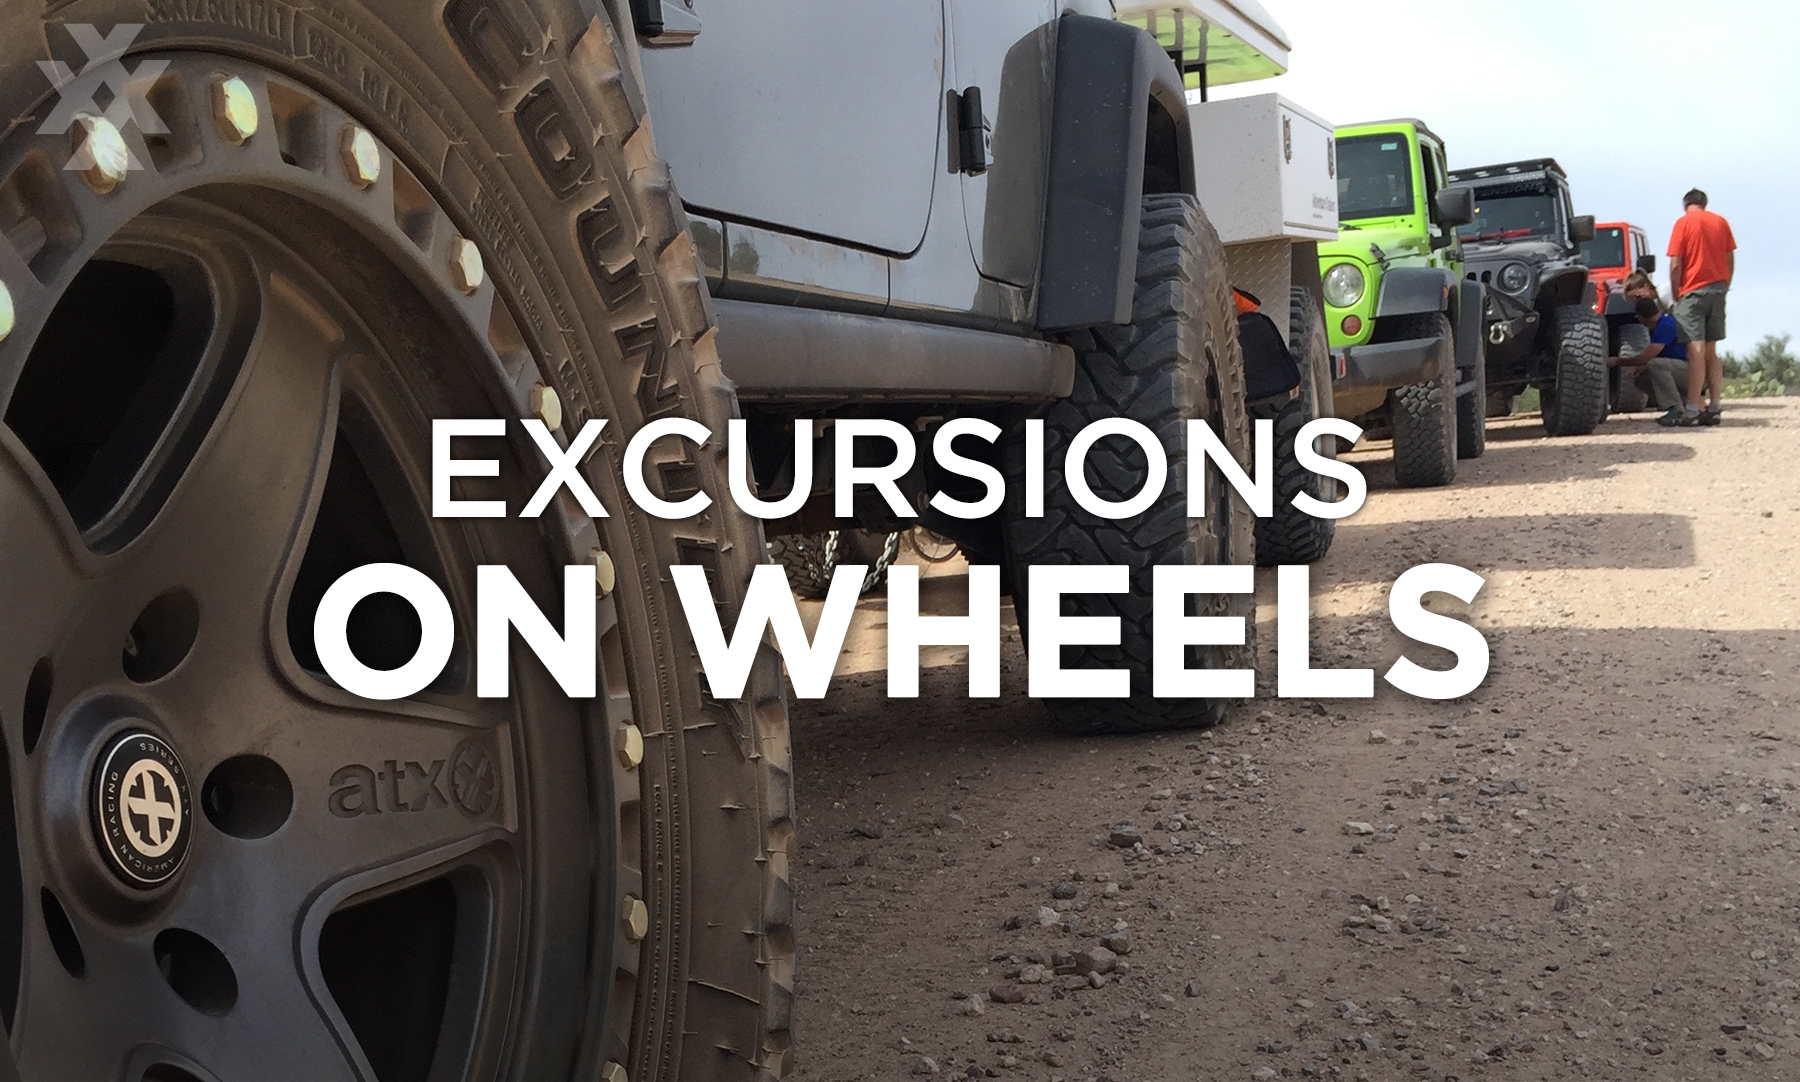 Excursions on wheels